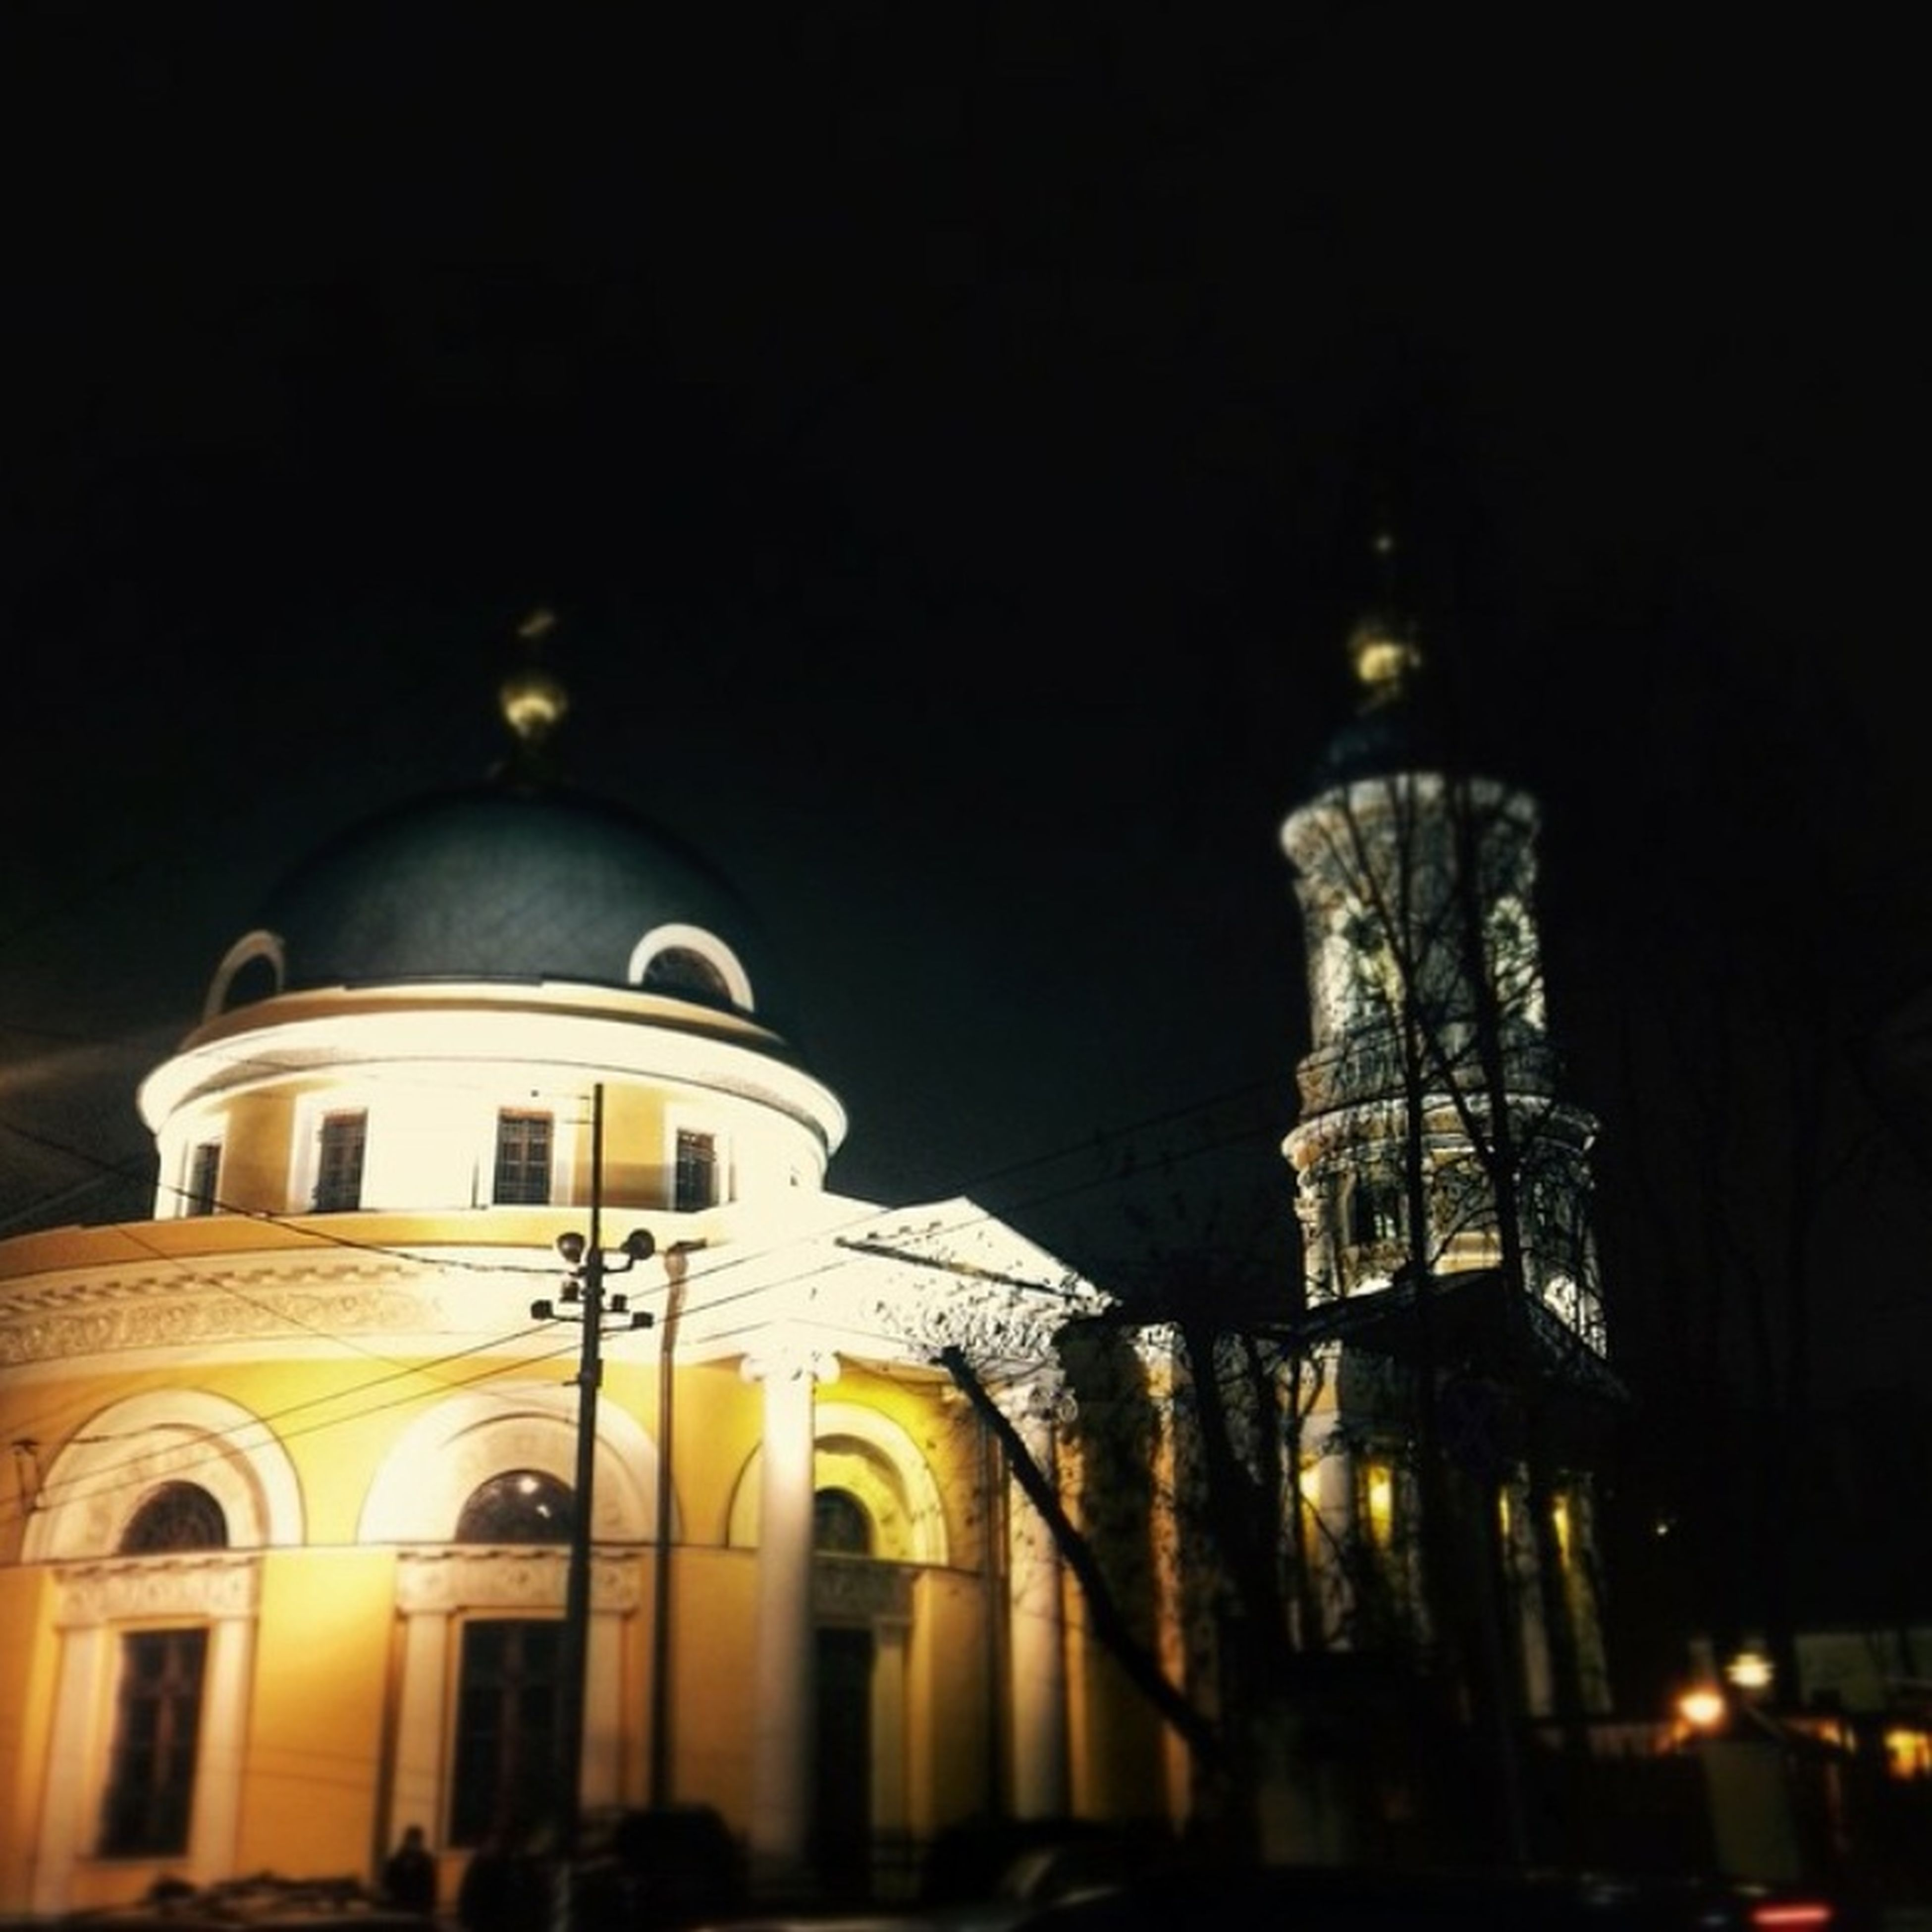 architecture, built structure, building exterior, dome, illuminated, night, low angle view, place of worship, church, religion, city, spirituality, famous place, travel destinations, cathedral, street light, sky, clear sky